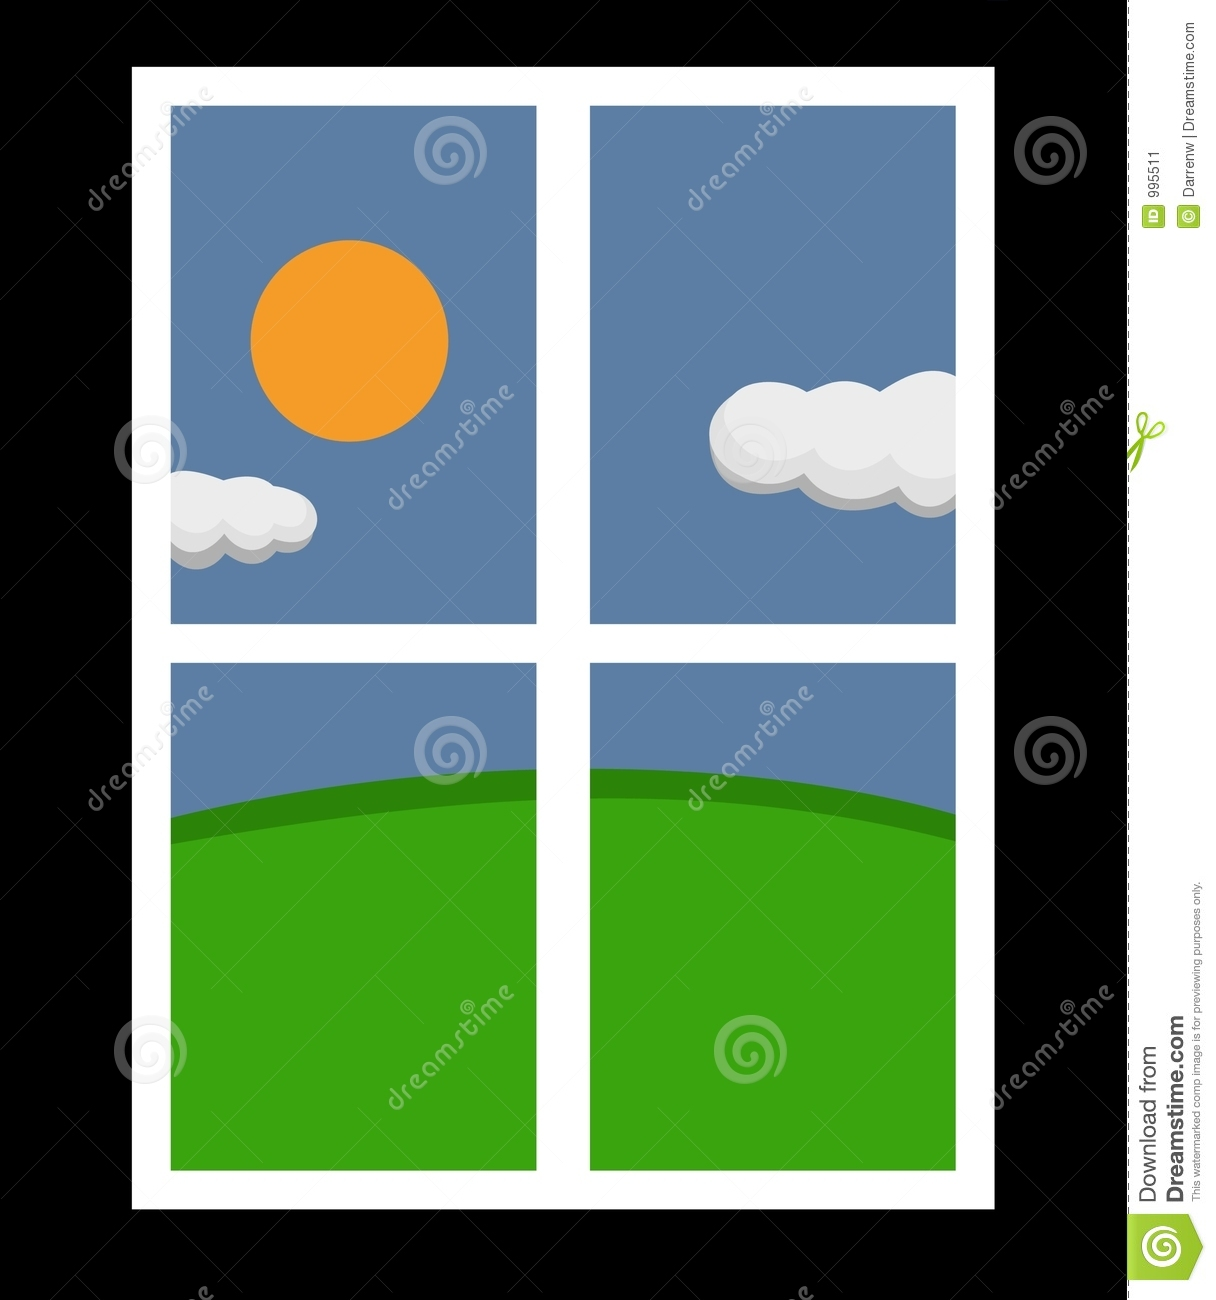 closed window clipart. window to outside clipart clipground closed